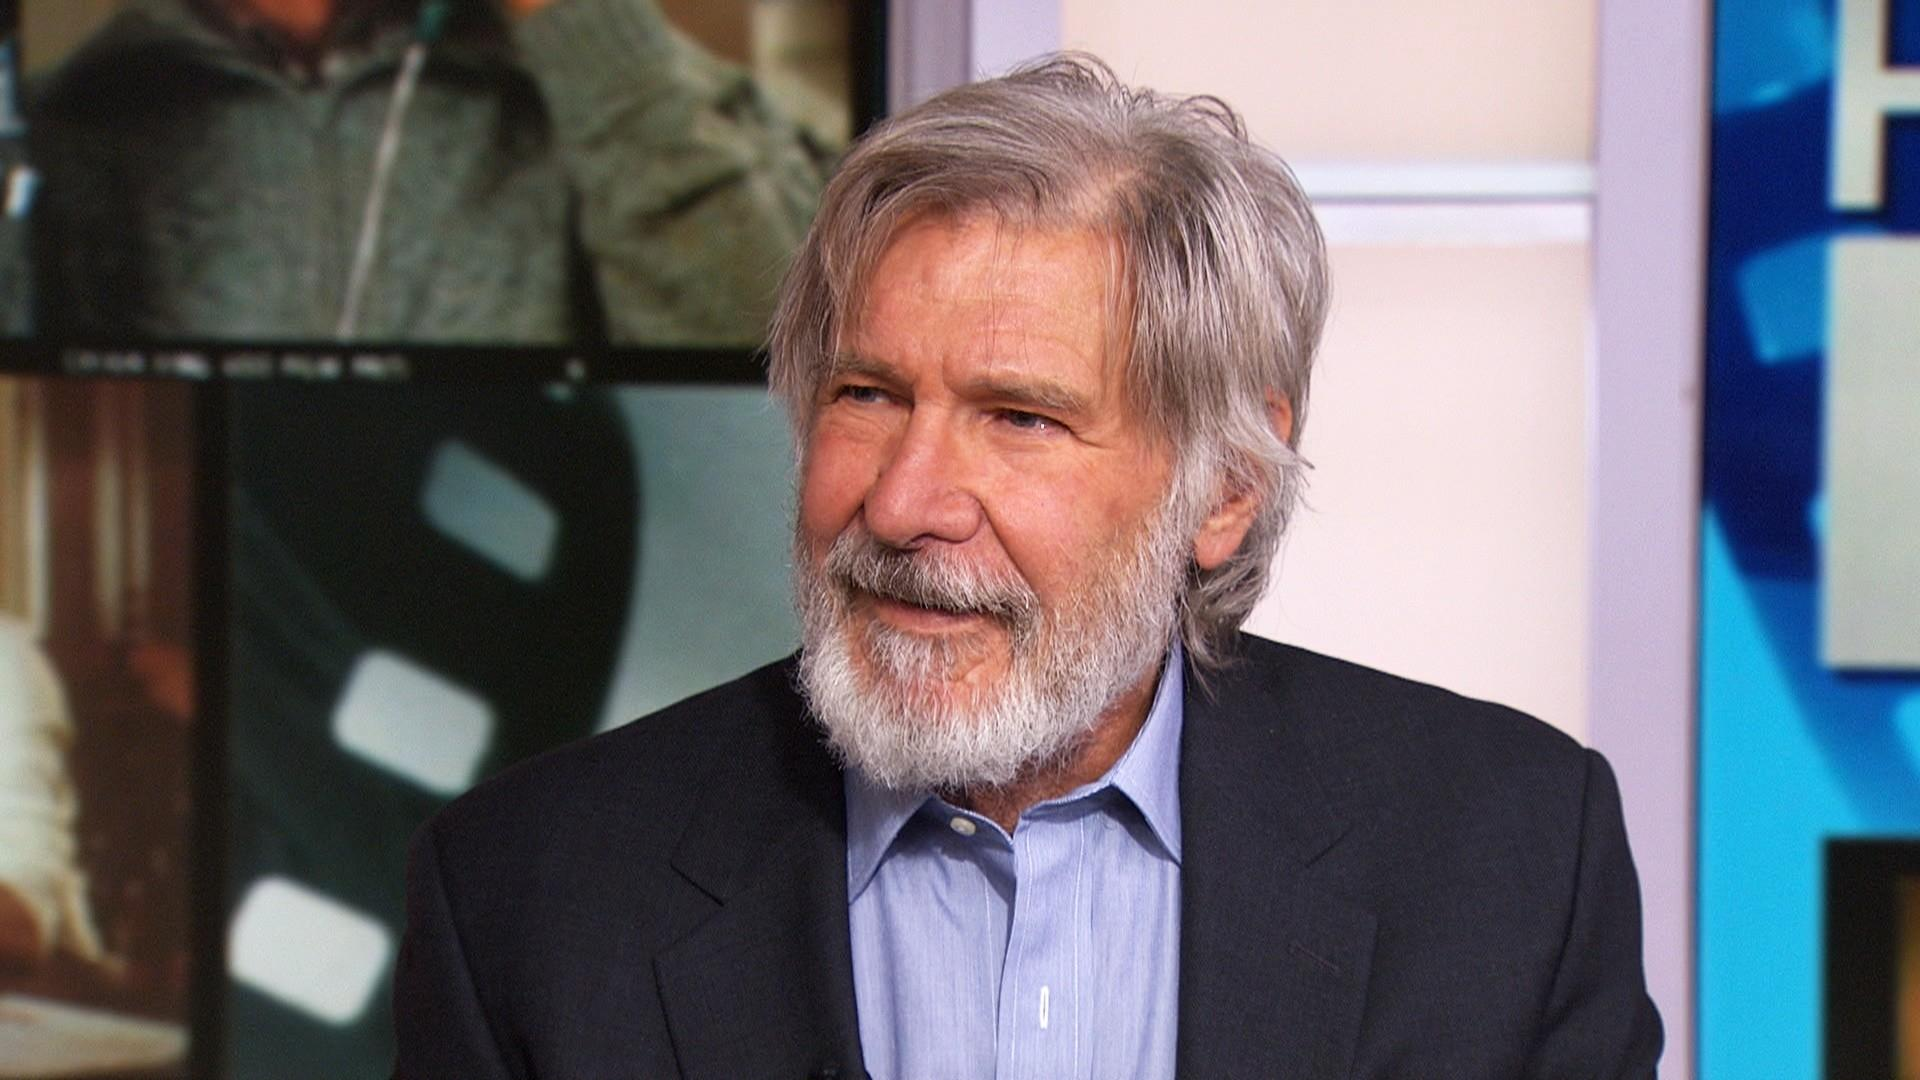 Indiana Jones fifth movie is coming but Who will play the lead role?